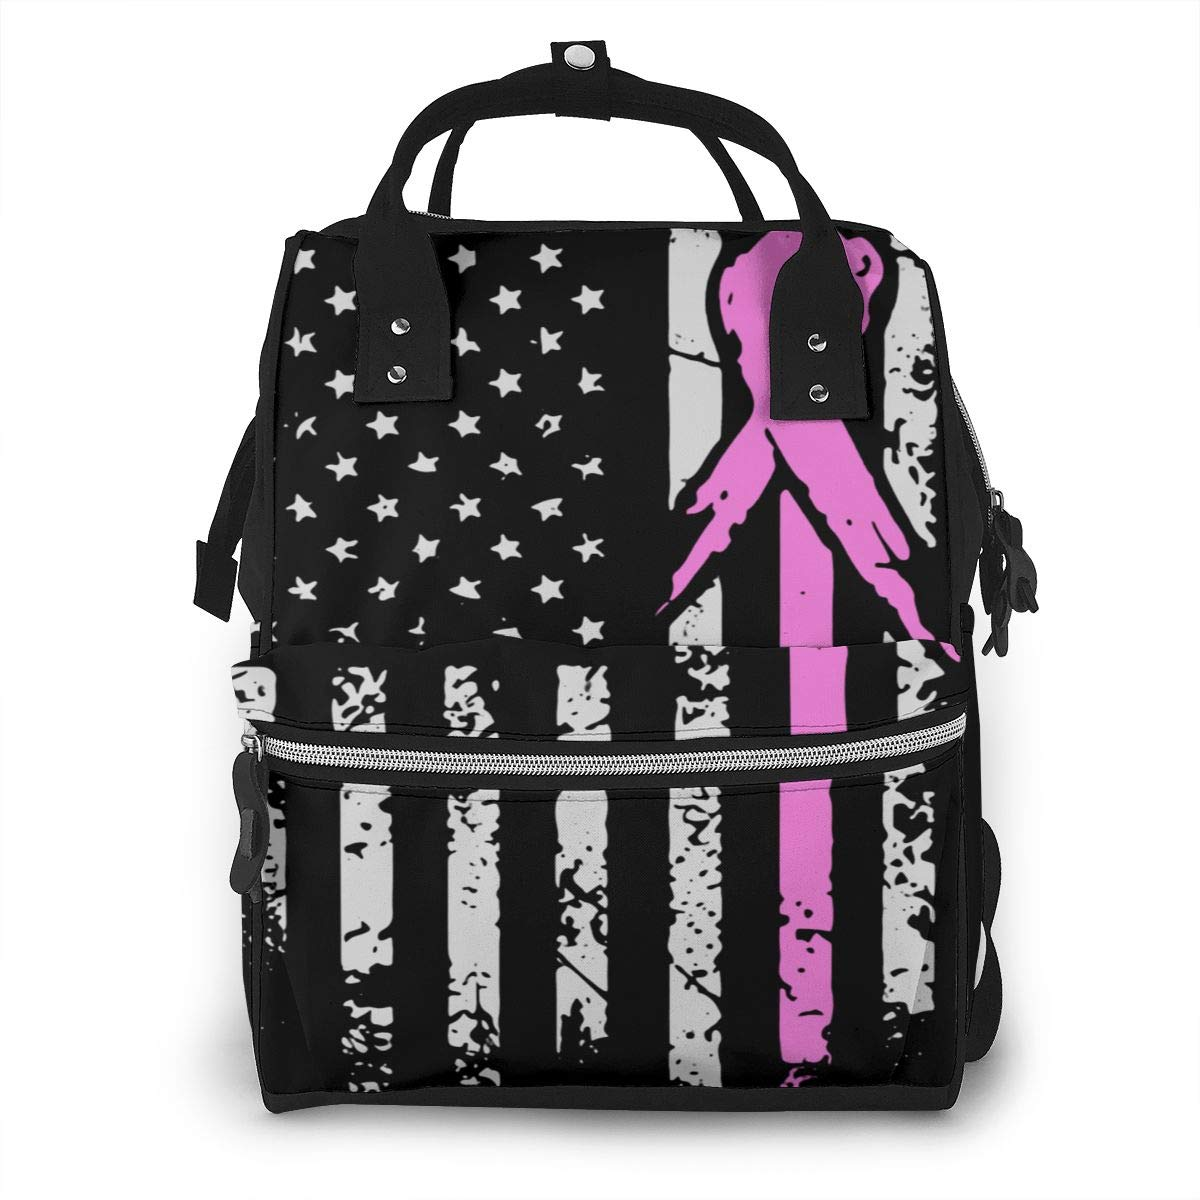 Breast Cancer Awareness of American Flag Diaper Bag Backpack Waterproof Multi-Function Baby Changing Bags Maternity Nappy Bags Durable Large Capacity for Mom Dad Travel Baby Care